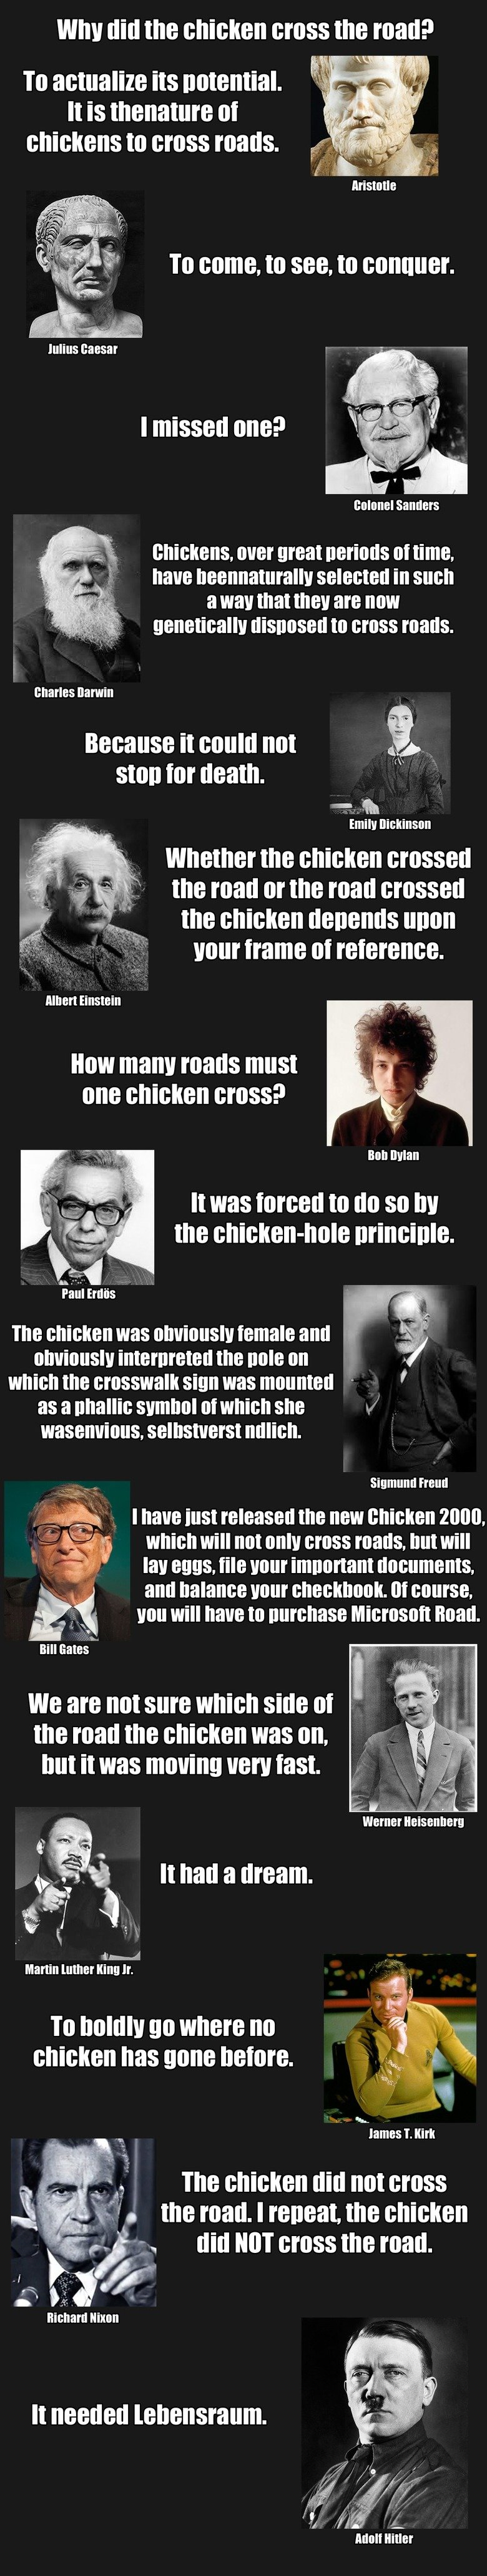 Why did the chicken cross the road?. Original answers and more can be found her: http://www.pathguy.com/chicken.htm I just picked my favourites... To activate the D